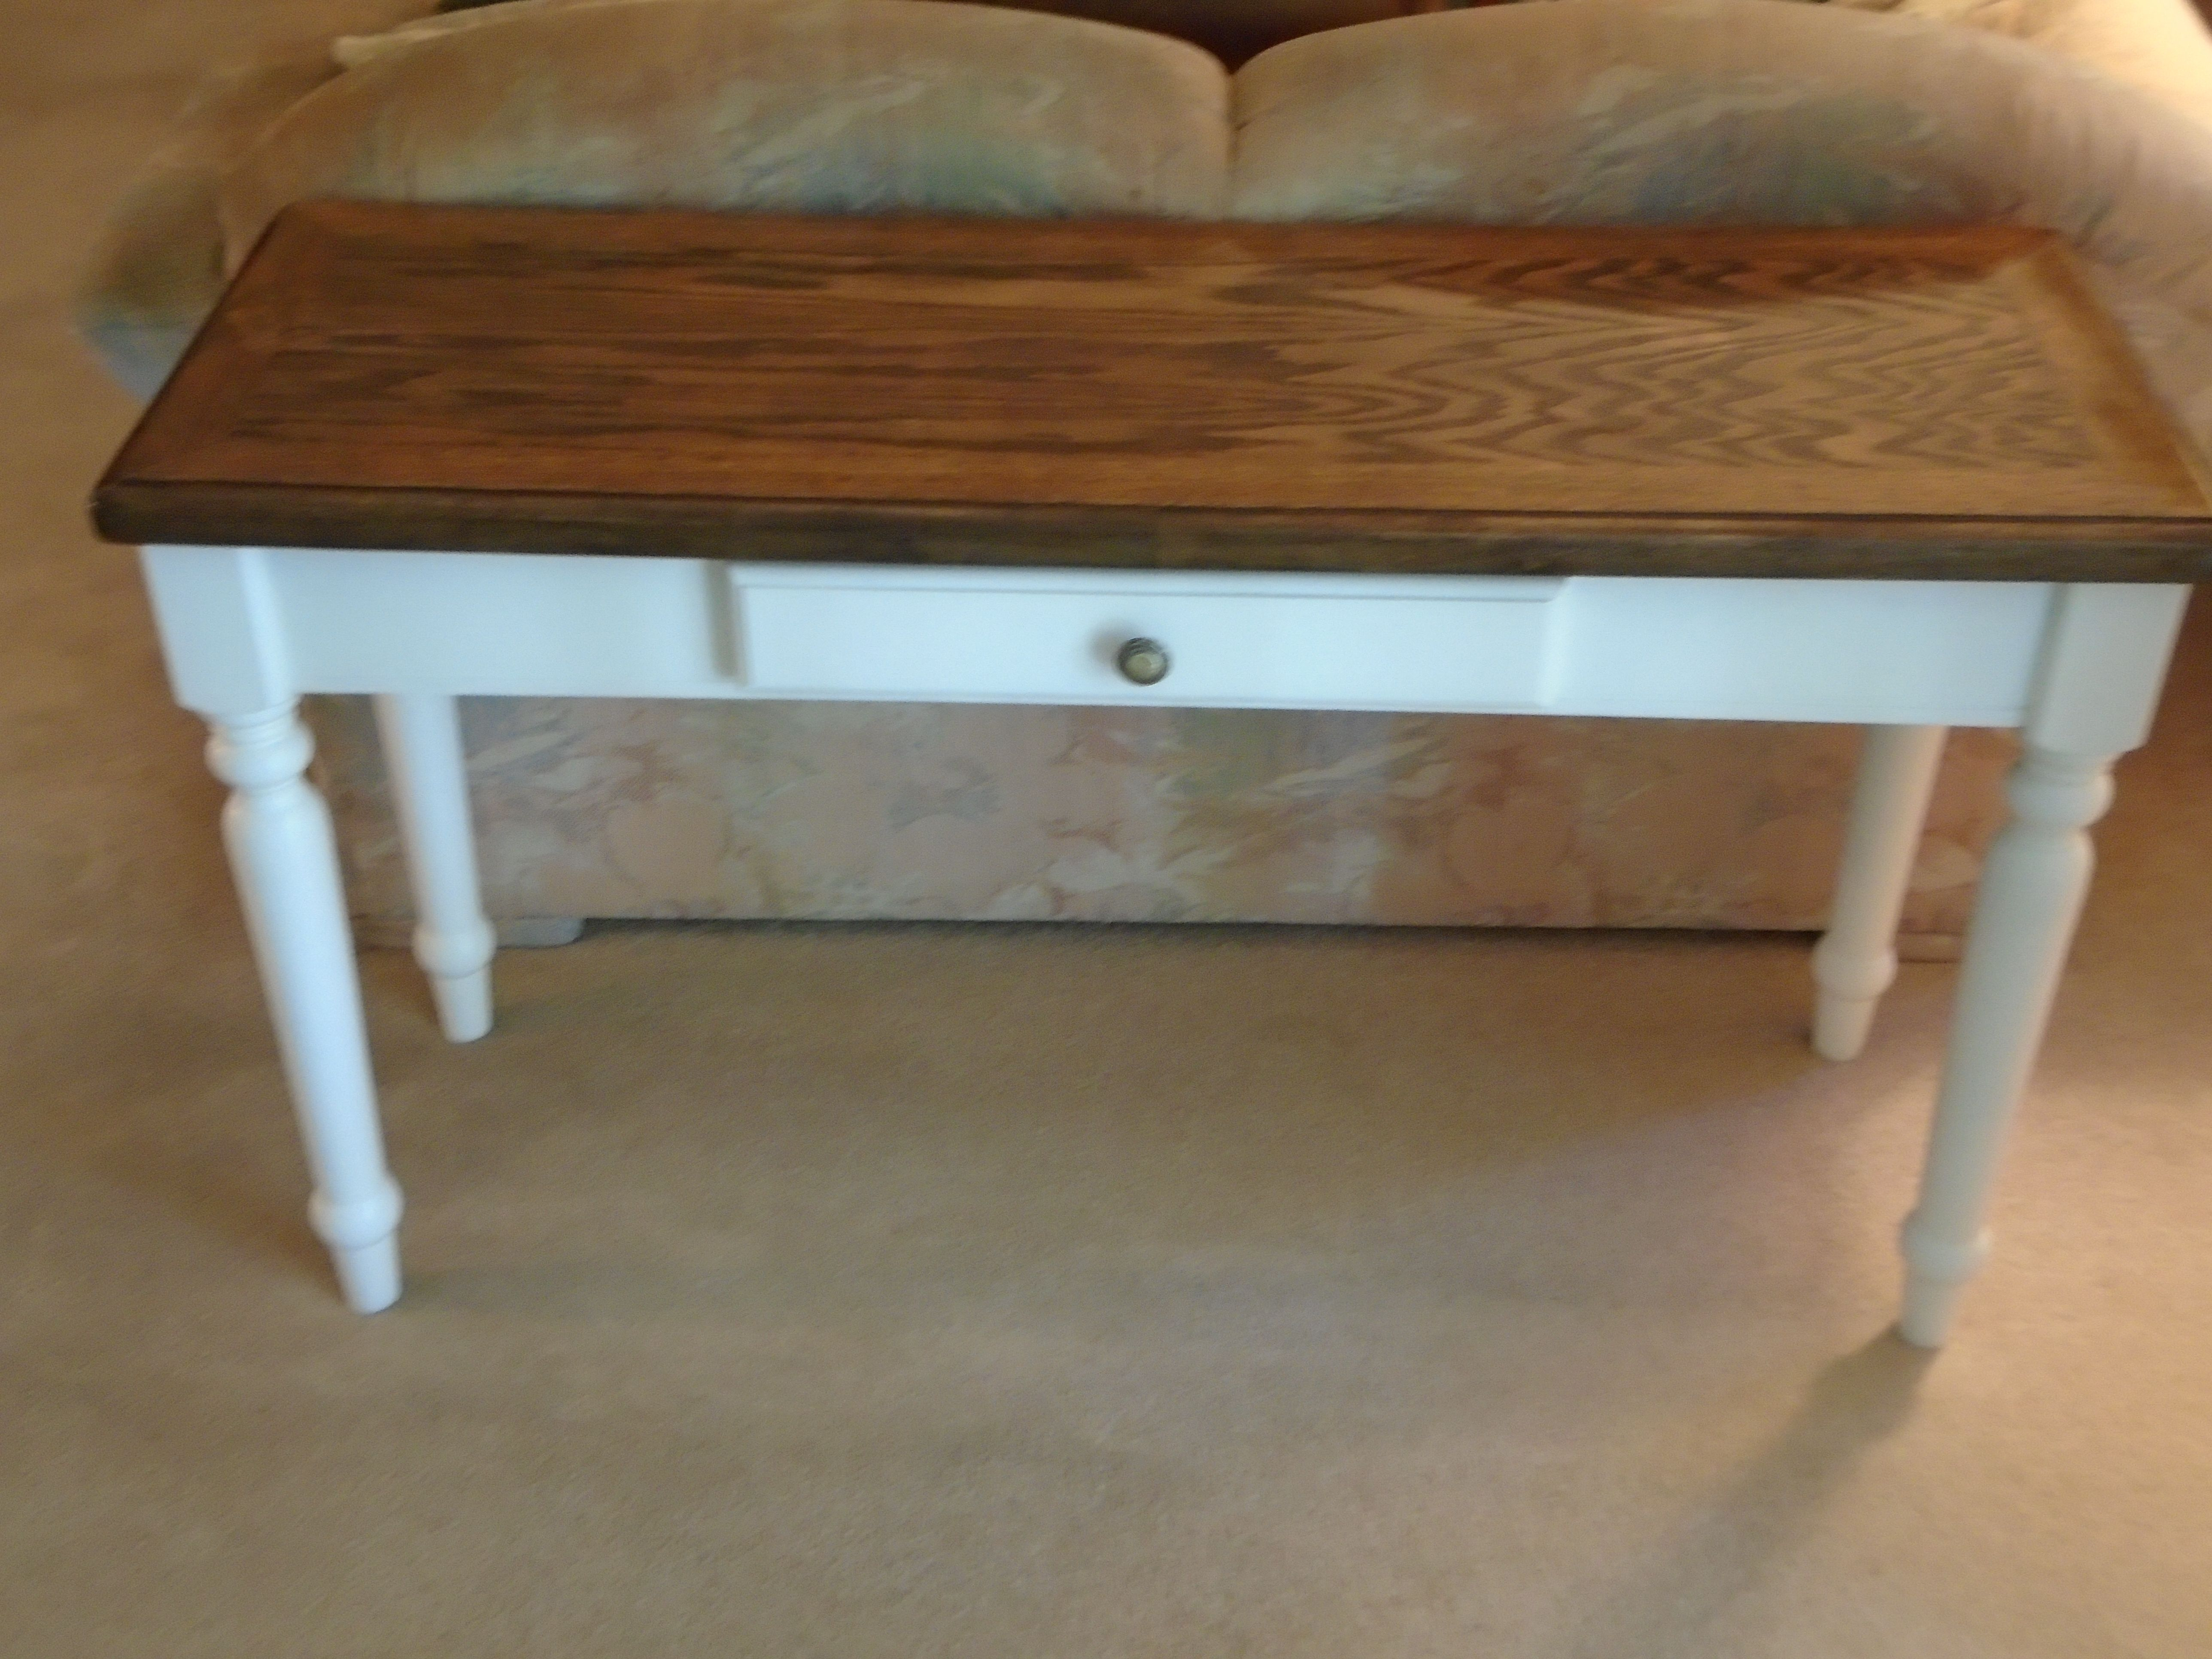 Farmhouse Style Entry Table, Sofa Table, Console Table, Desk With